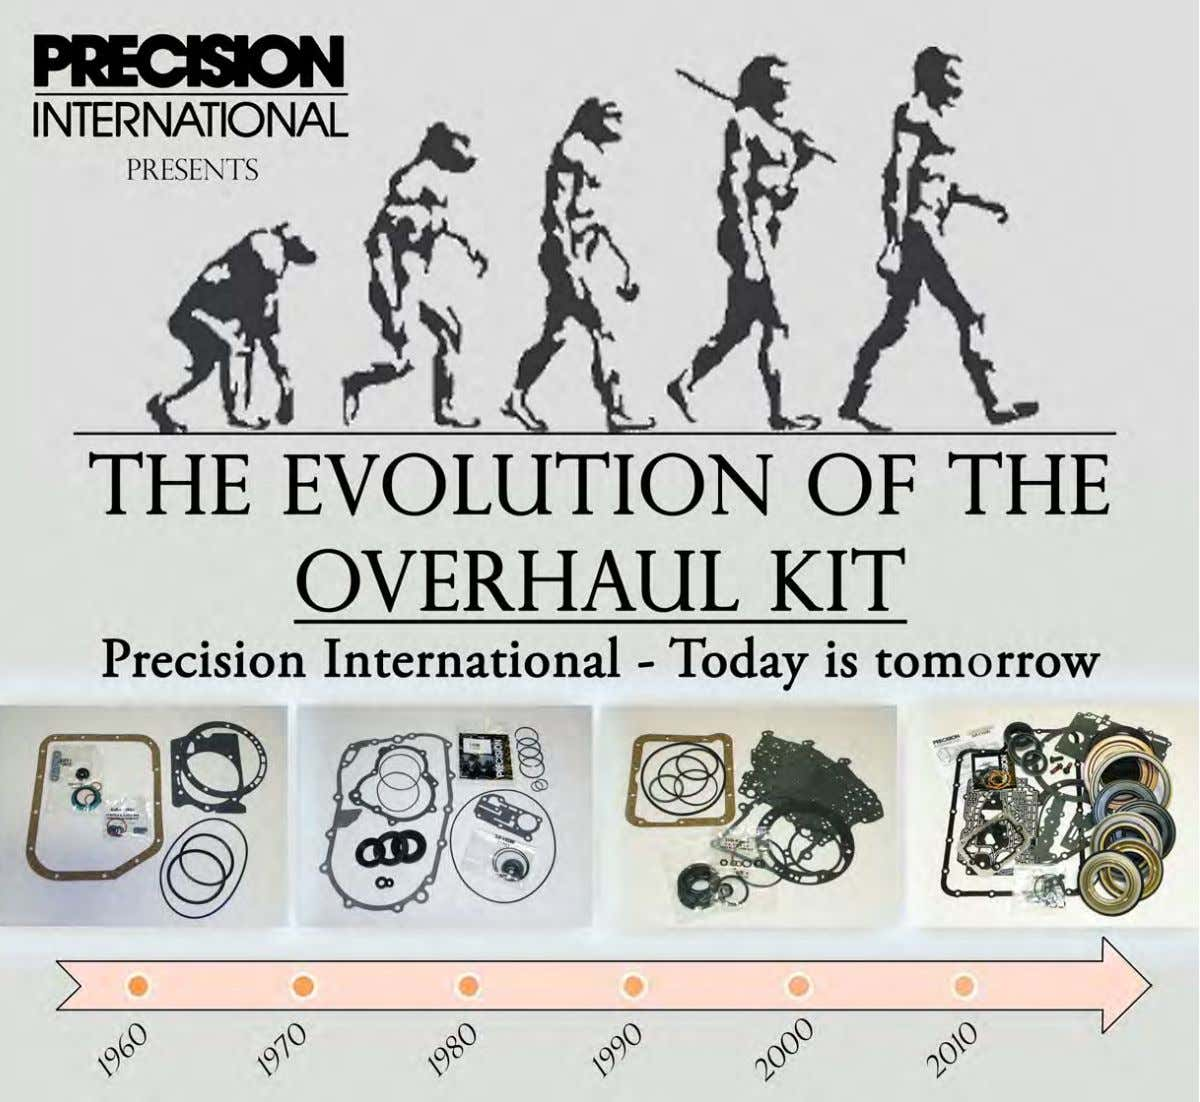 Circa 1975: Evolution 1.0 - The Beginning Precision International created their first Transmission Rebuild Overhaul